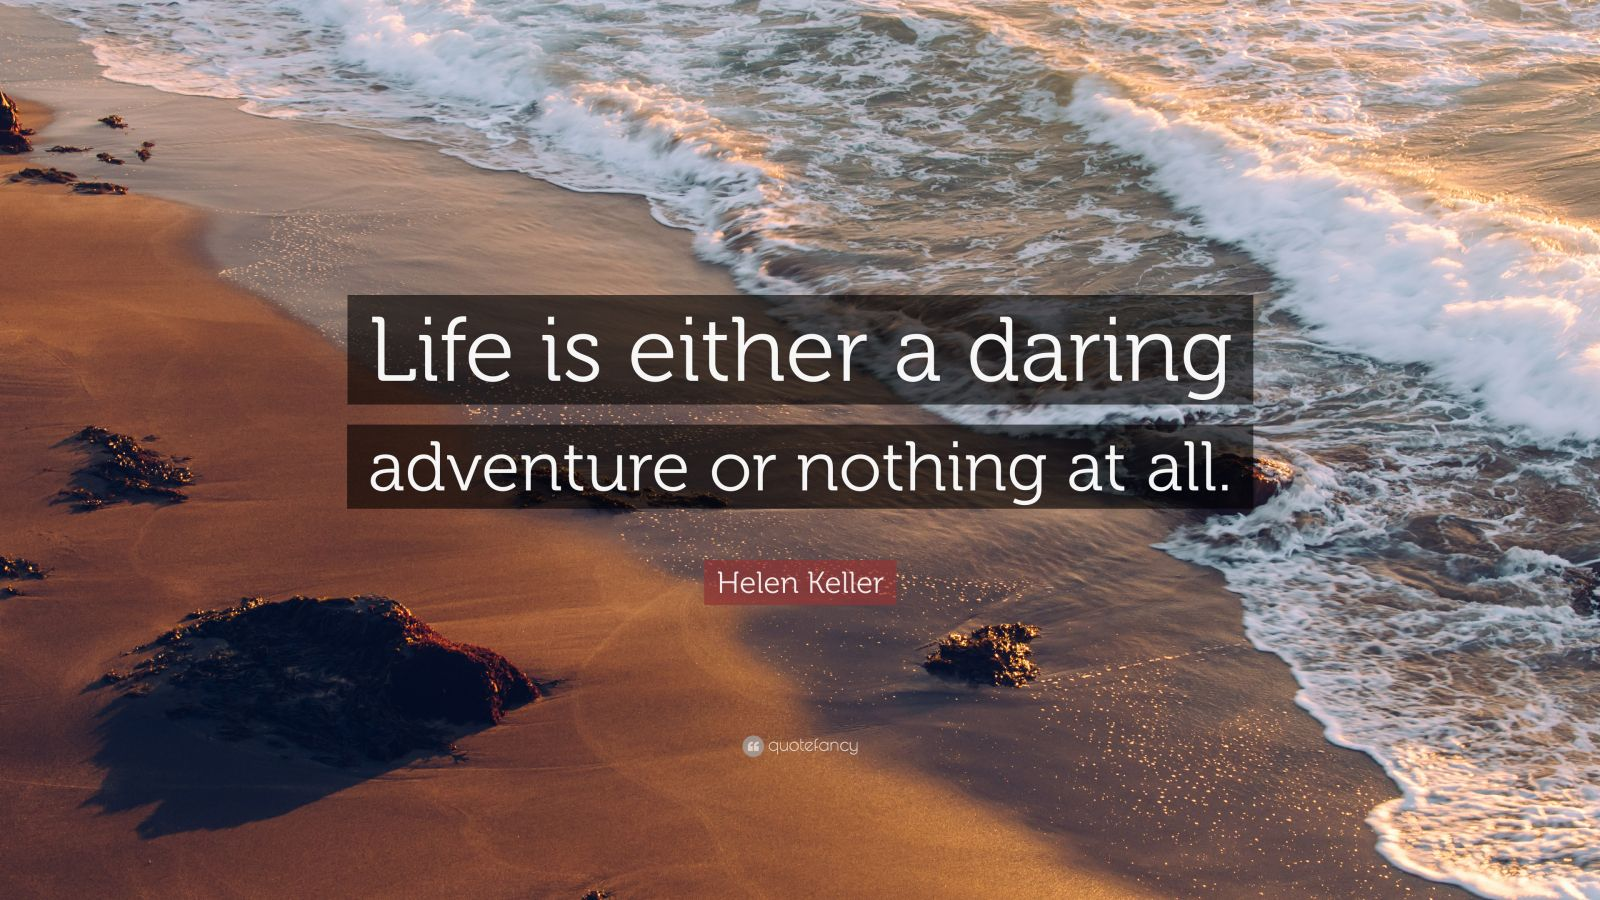 an analysis of the quote life is either a daring adventure or nothing at all by helen keller The author of the following quotes: helen keller life is either a daring adventure, or nothing therefore they conclude that there is nothing outside.